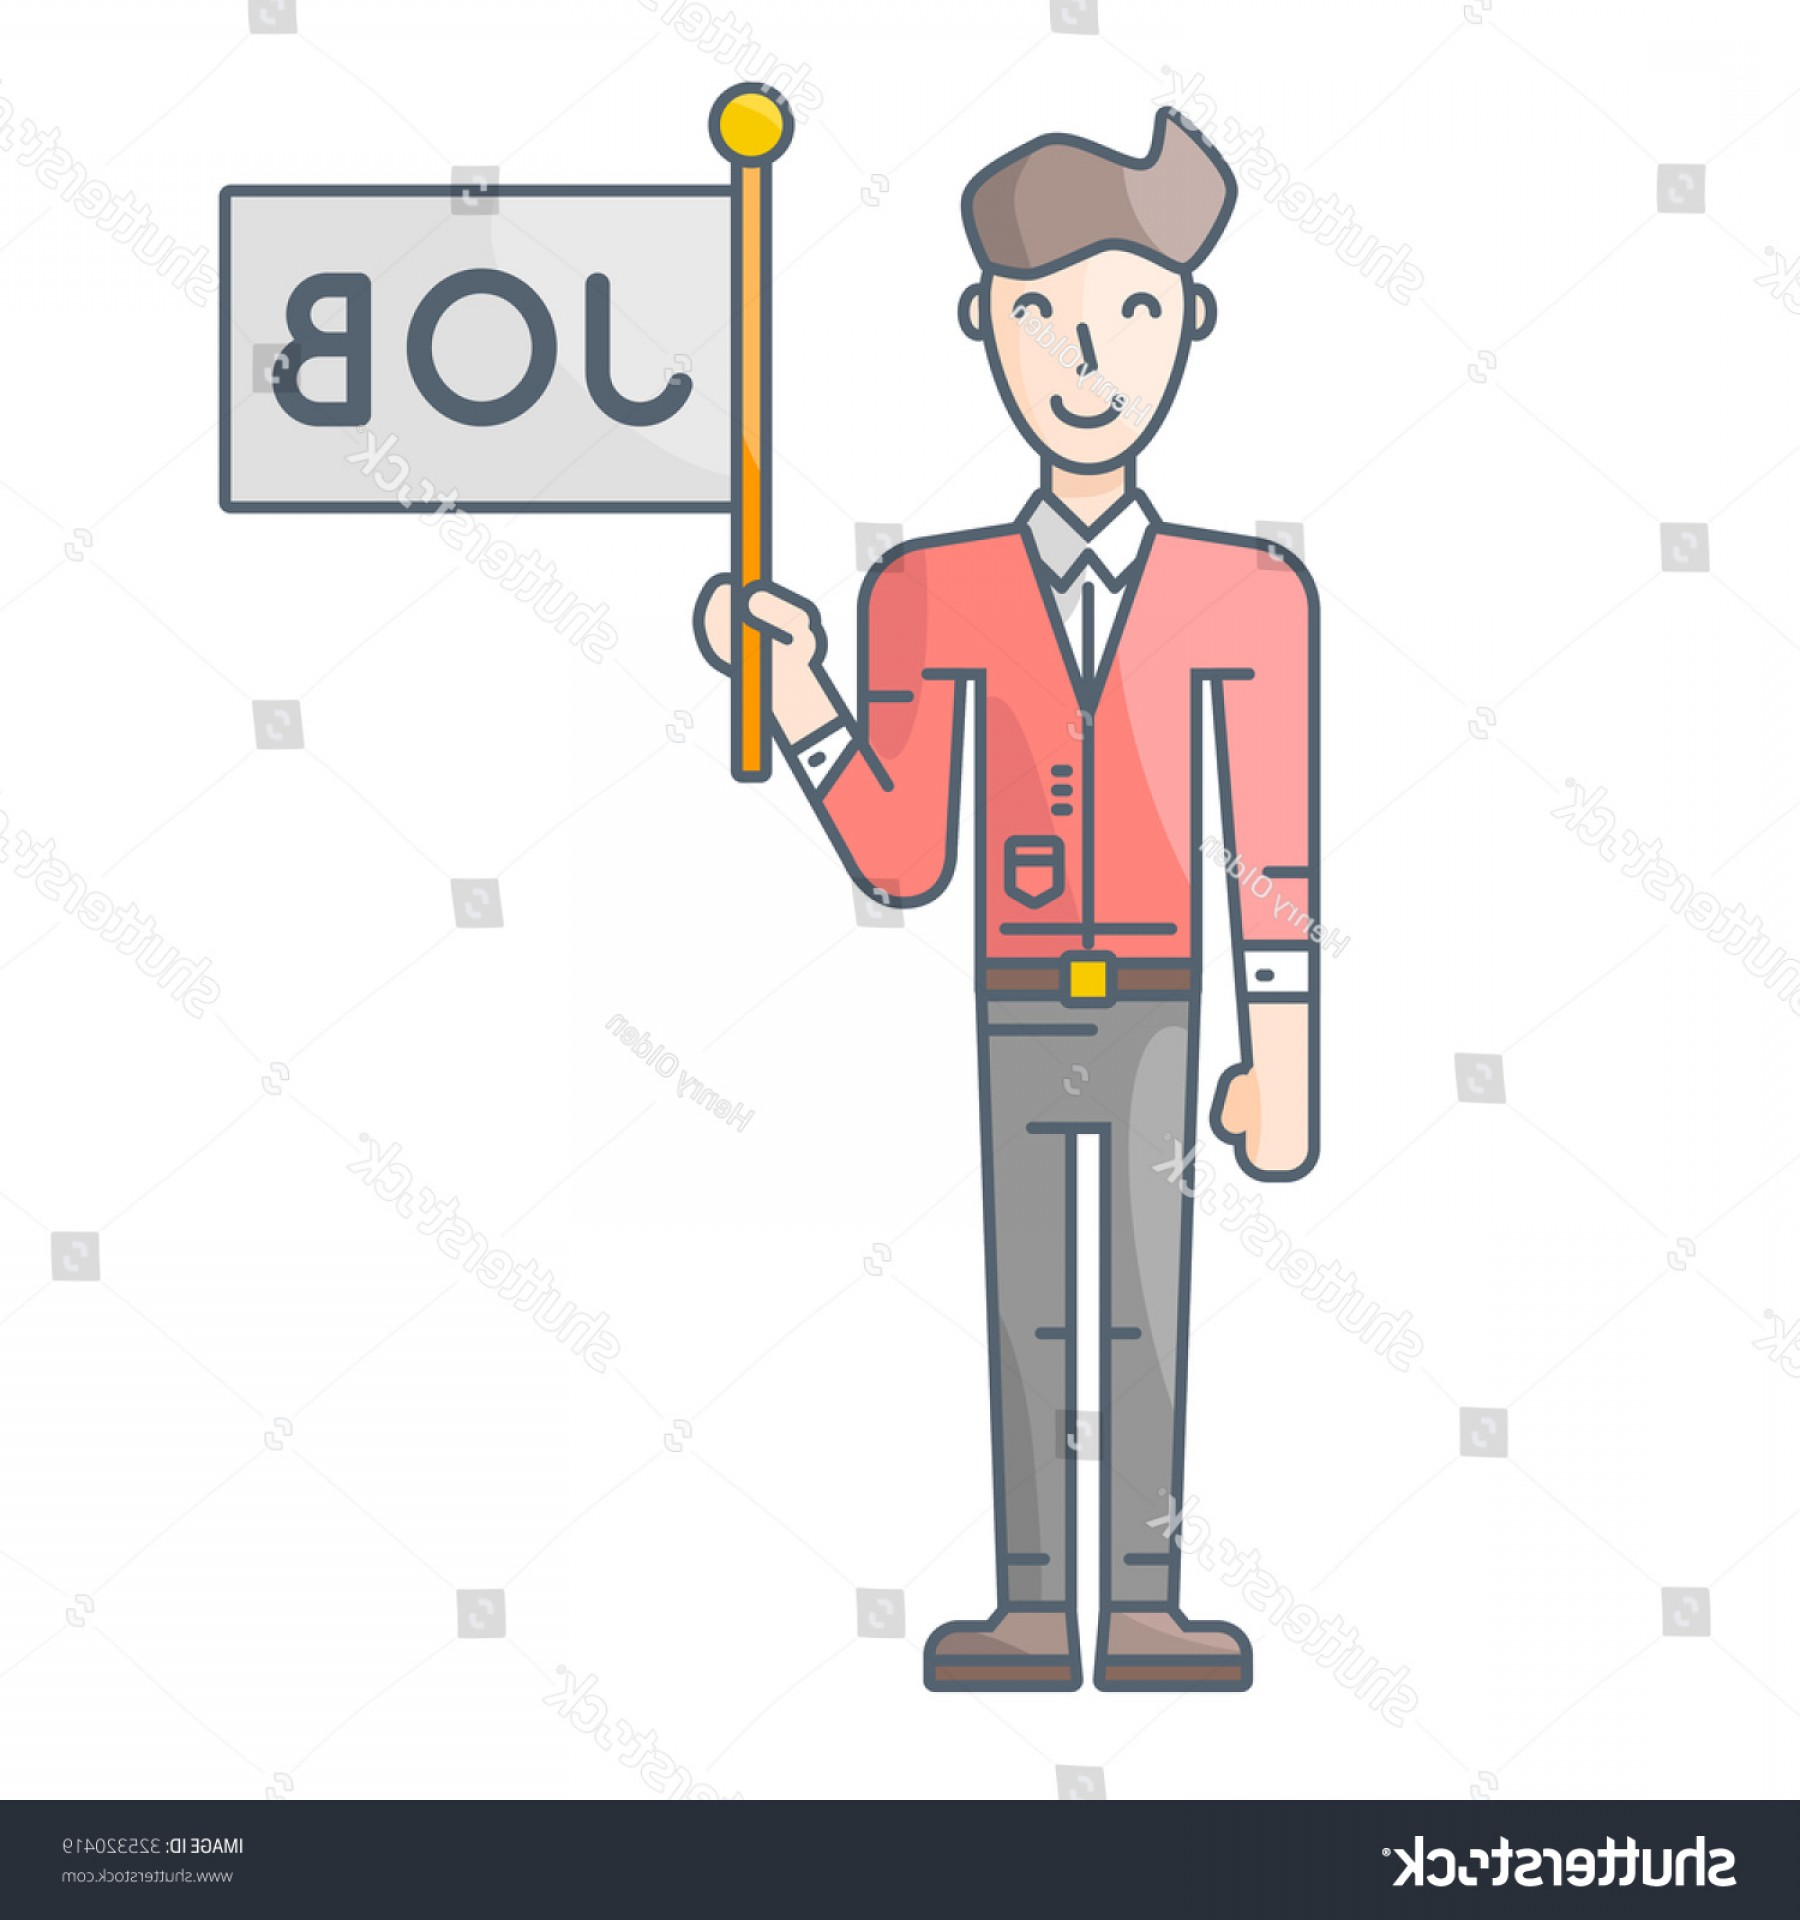 Vector Job Offer: Man Holding Flag Job Offer Vector